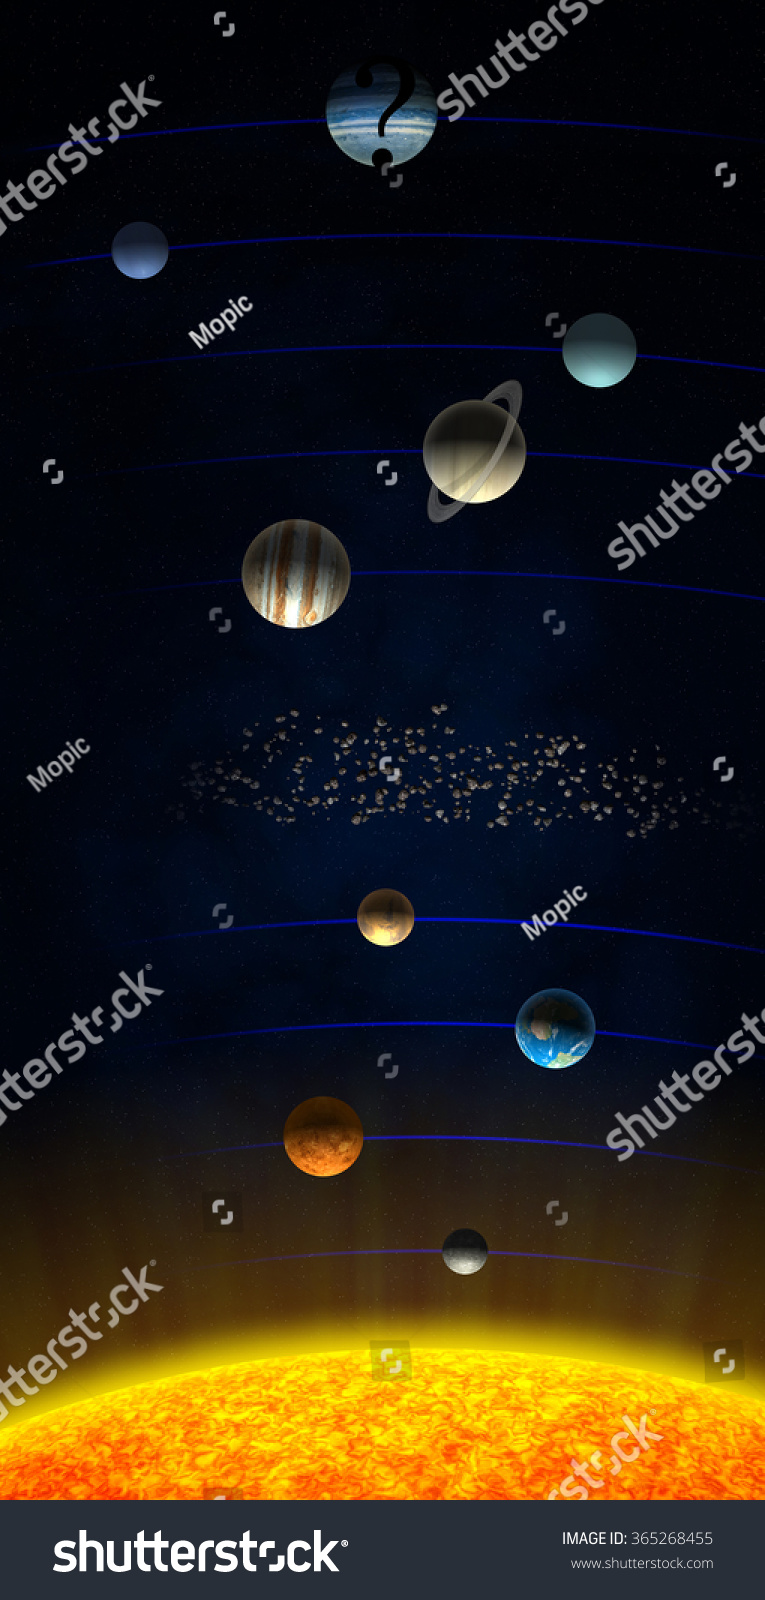 Solar system shown with the theorized ninth Planet X